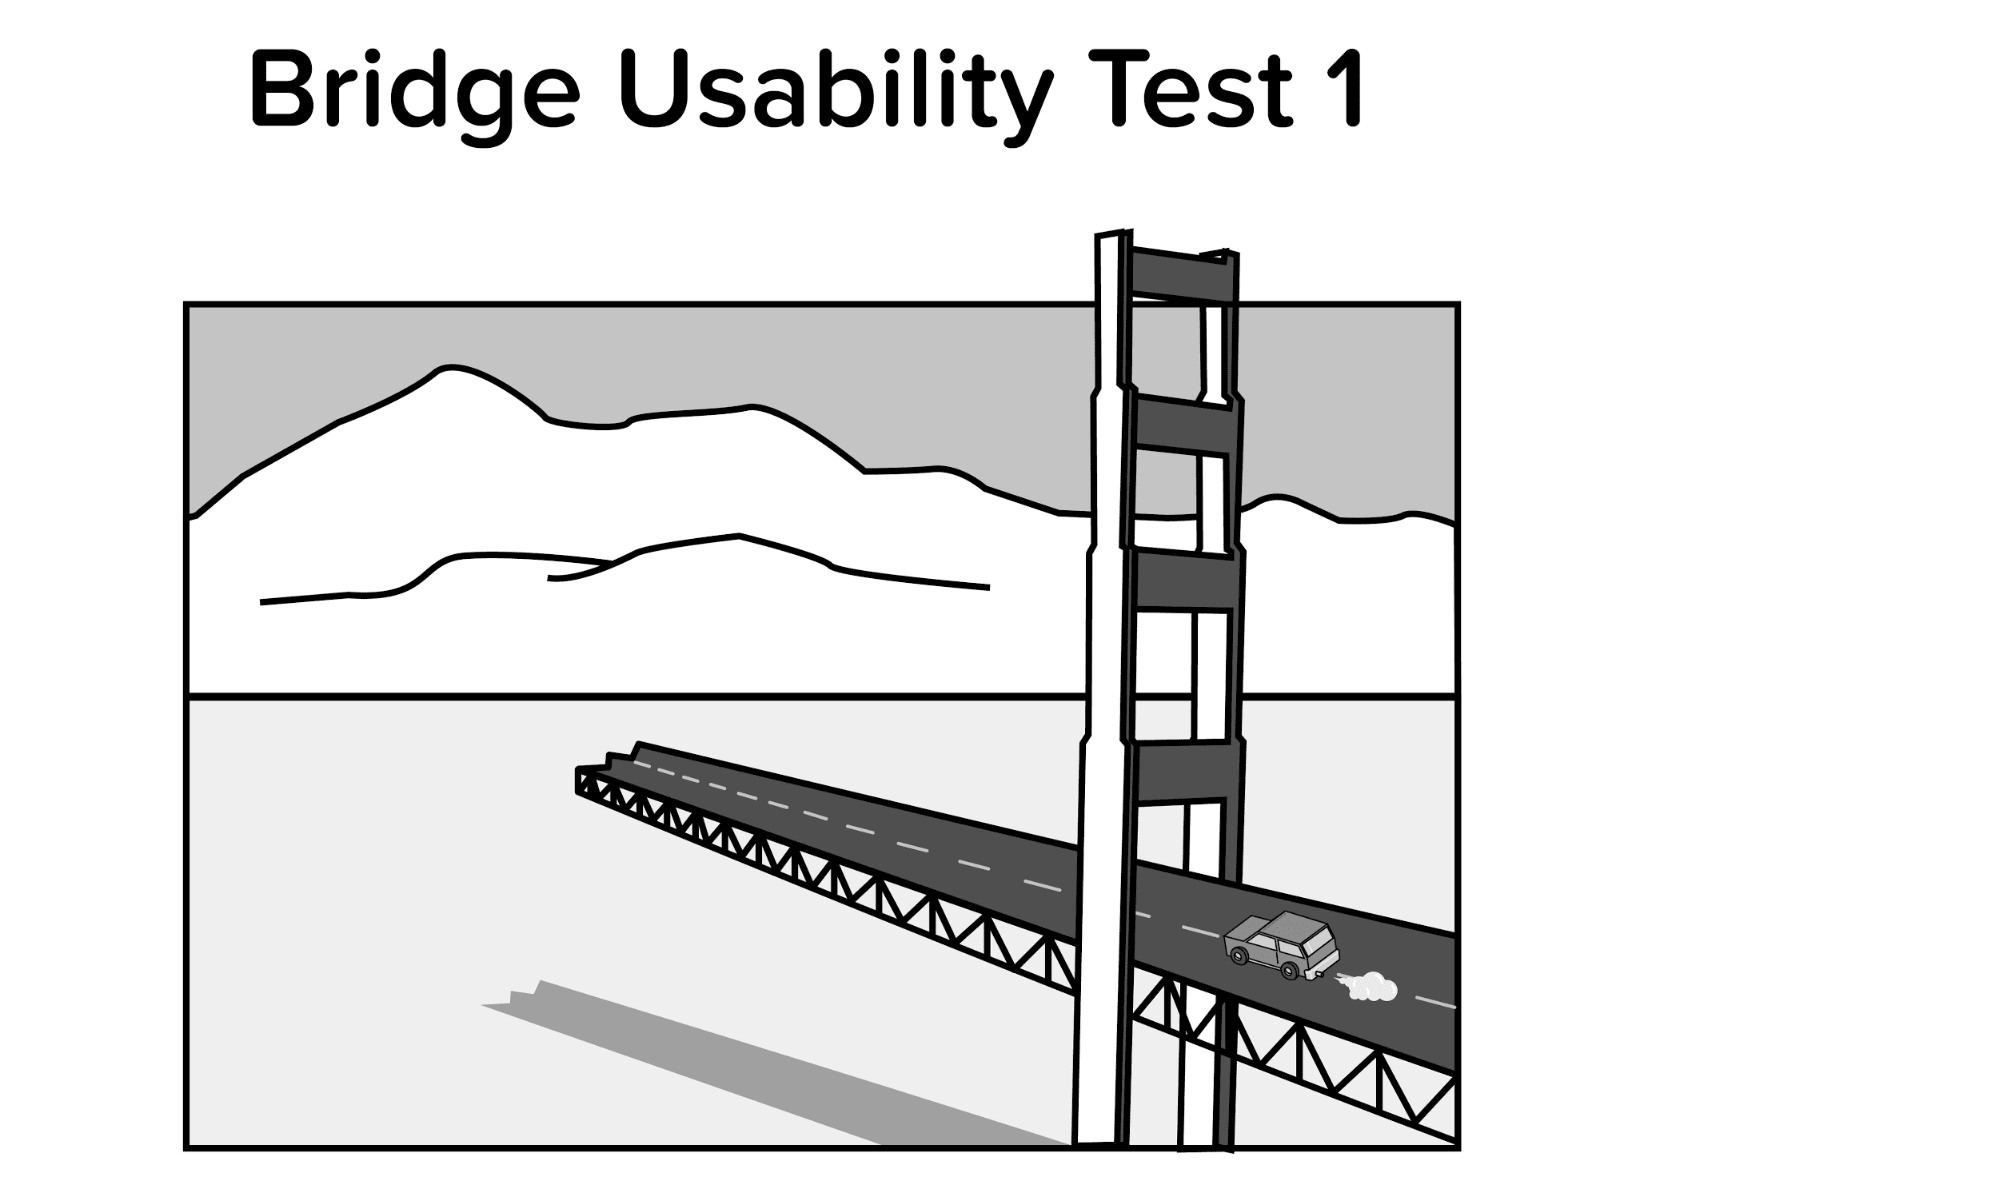 UX Comic illustrating why qualitative data is important - cell 1